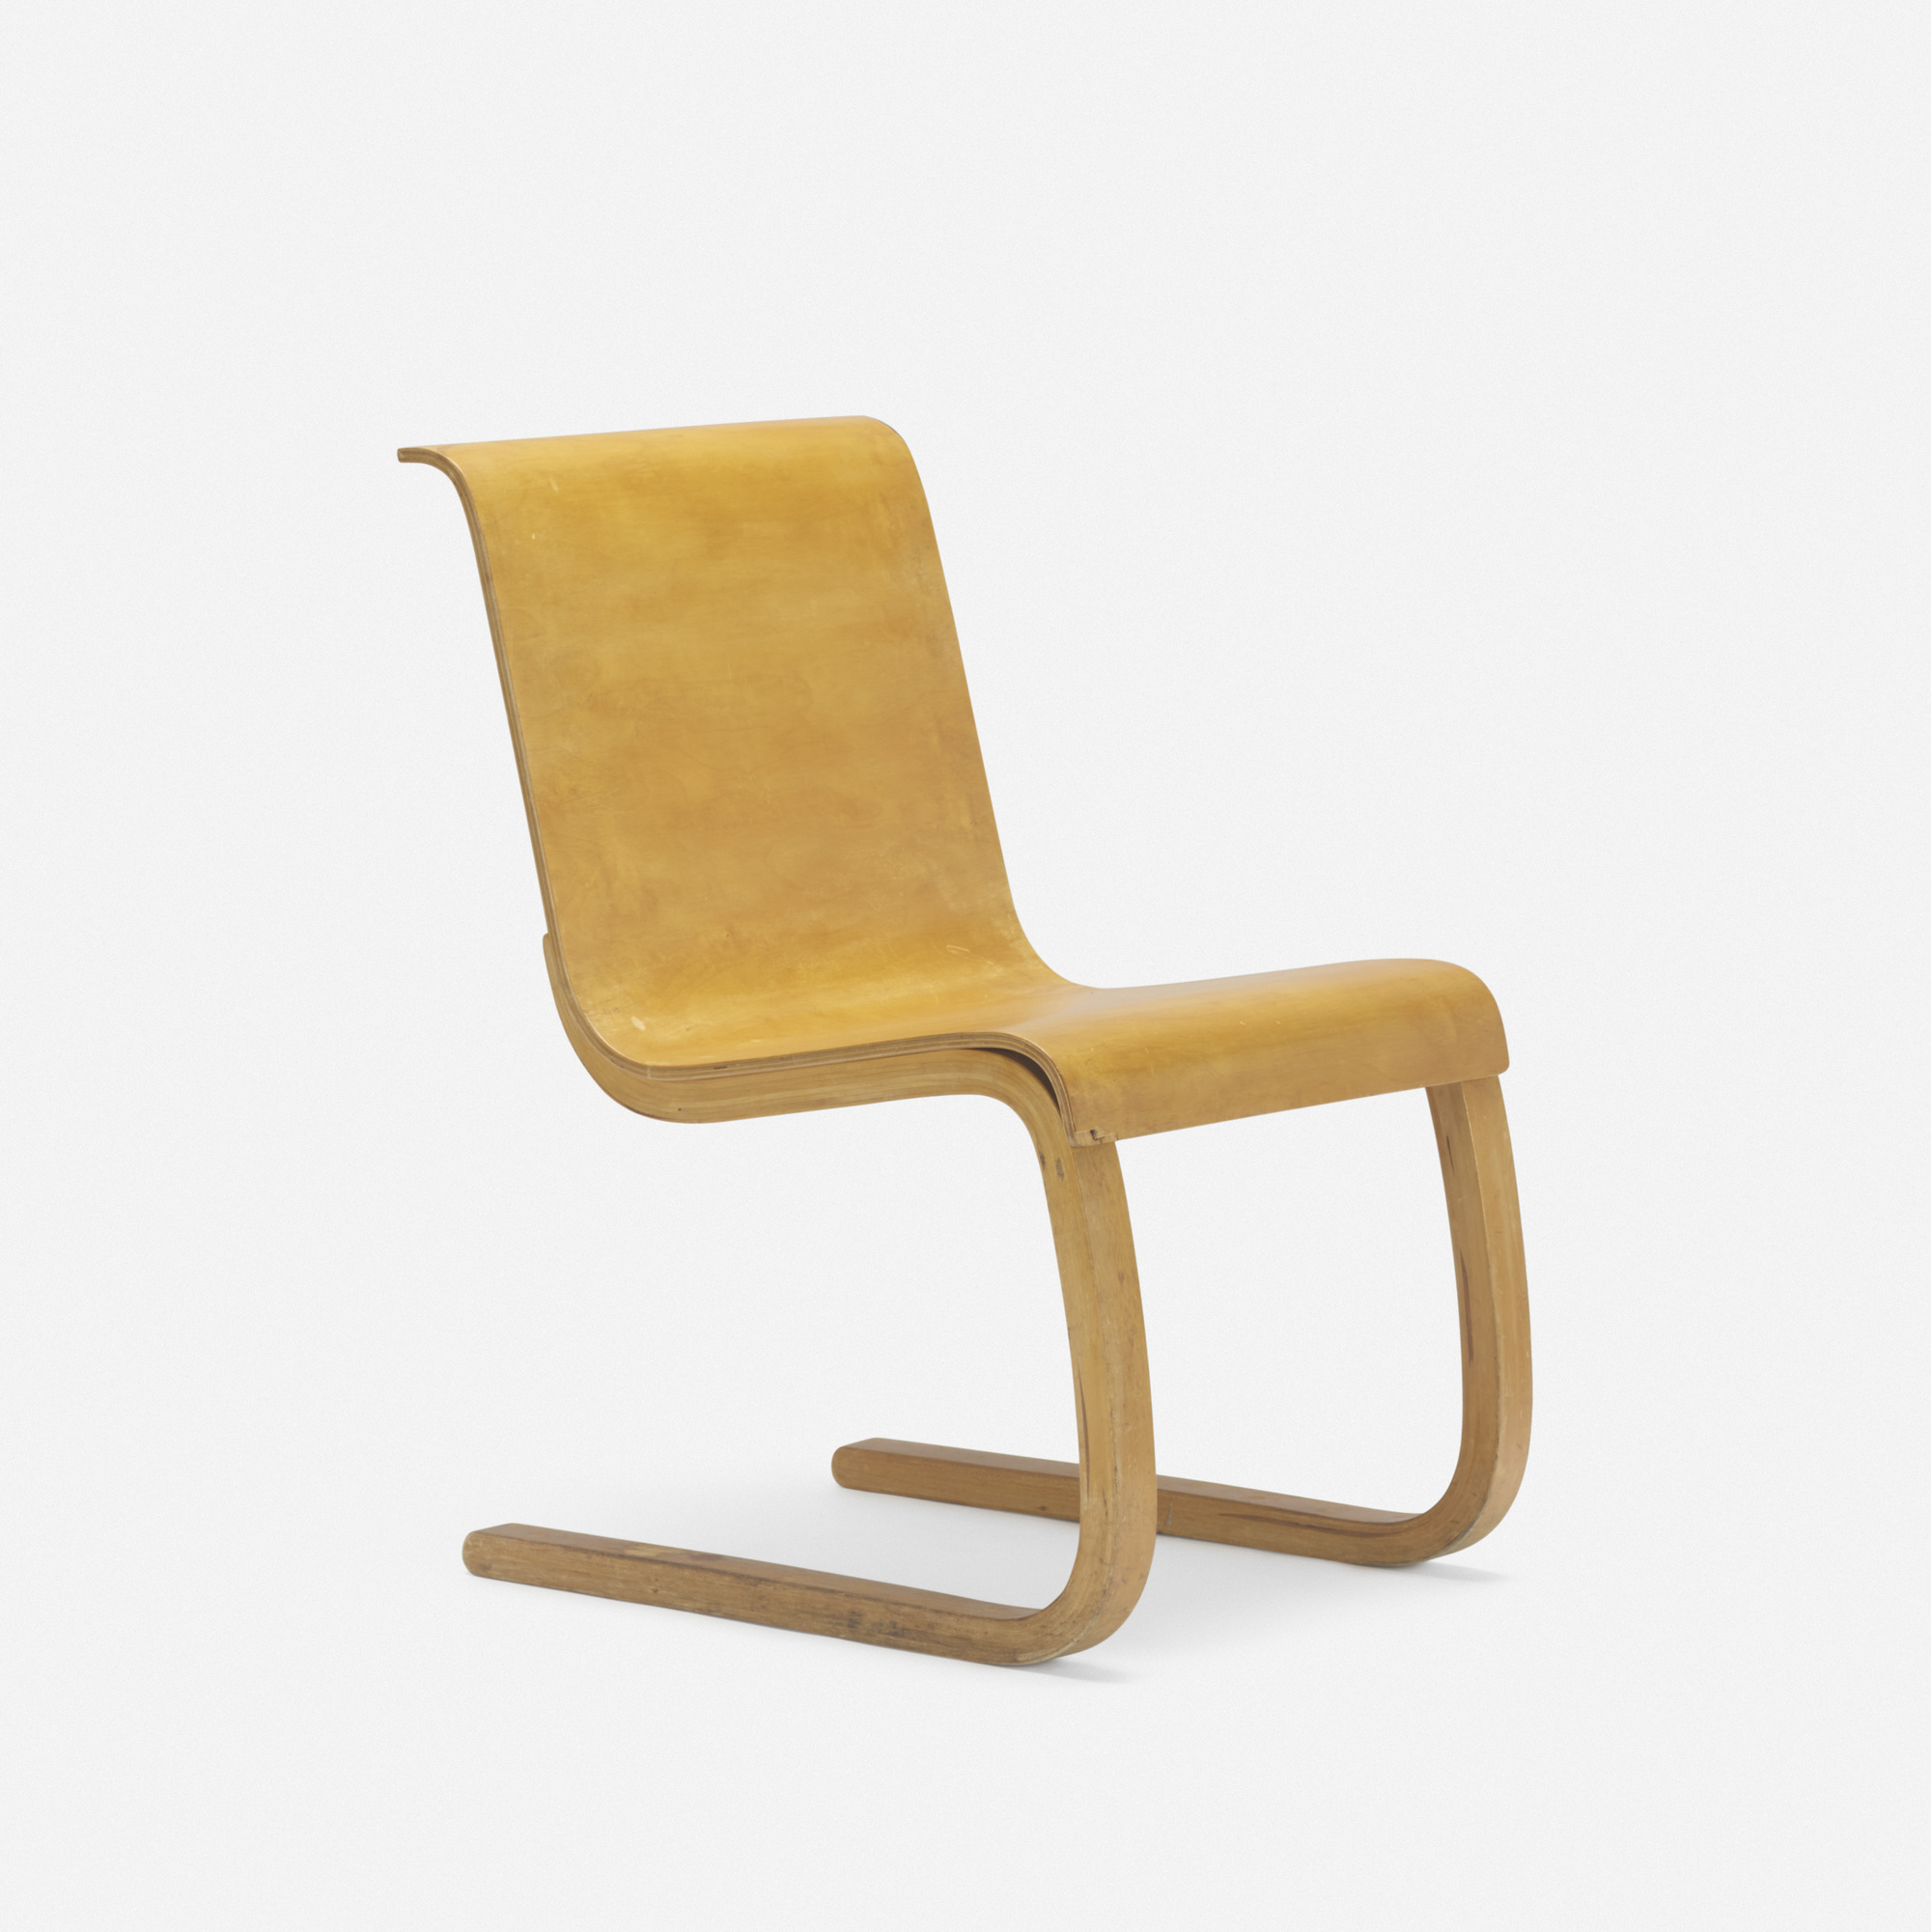 alvar aalto furniture. 408: Alvar Aalto / Early Cantilever Chair, Model 21 (1 Of 3) Furniture C